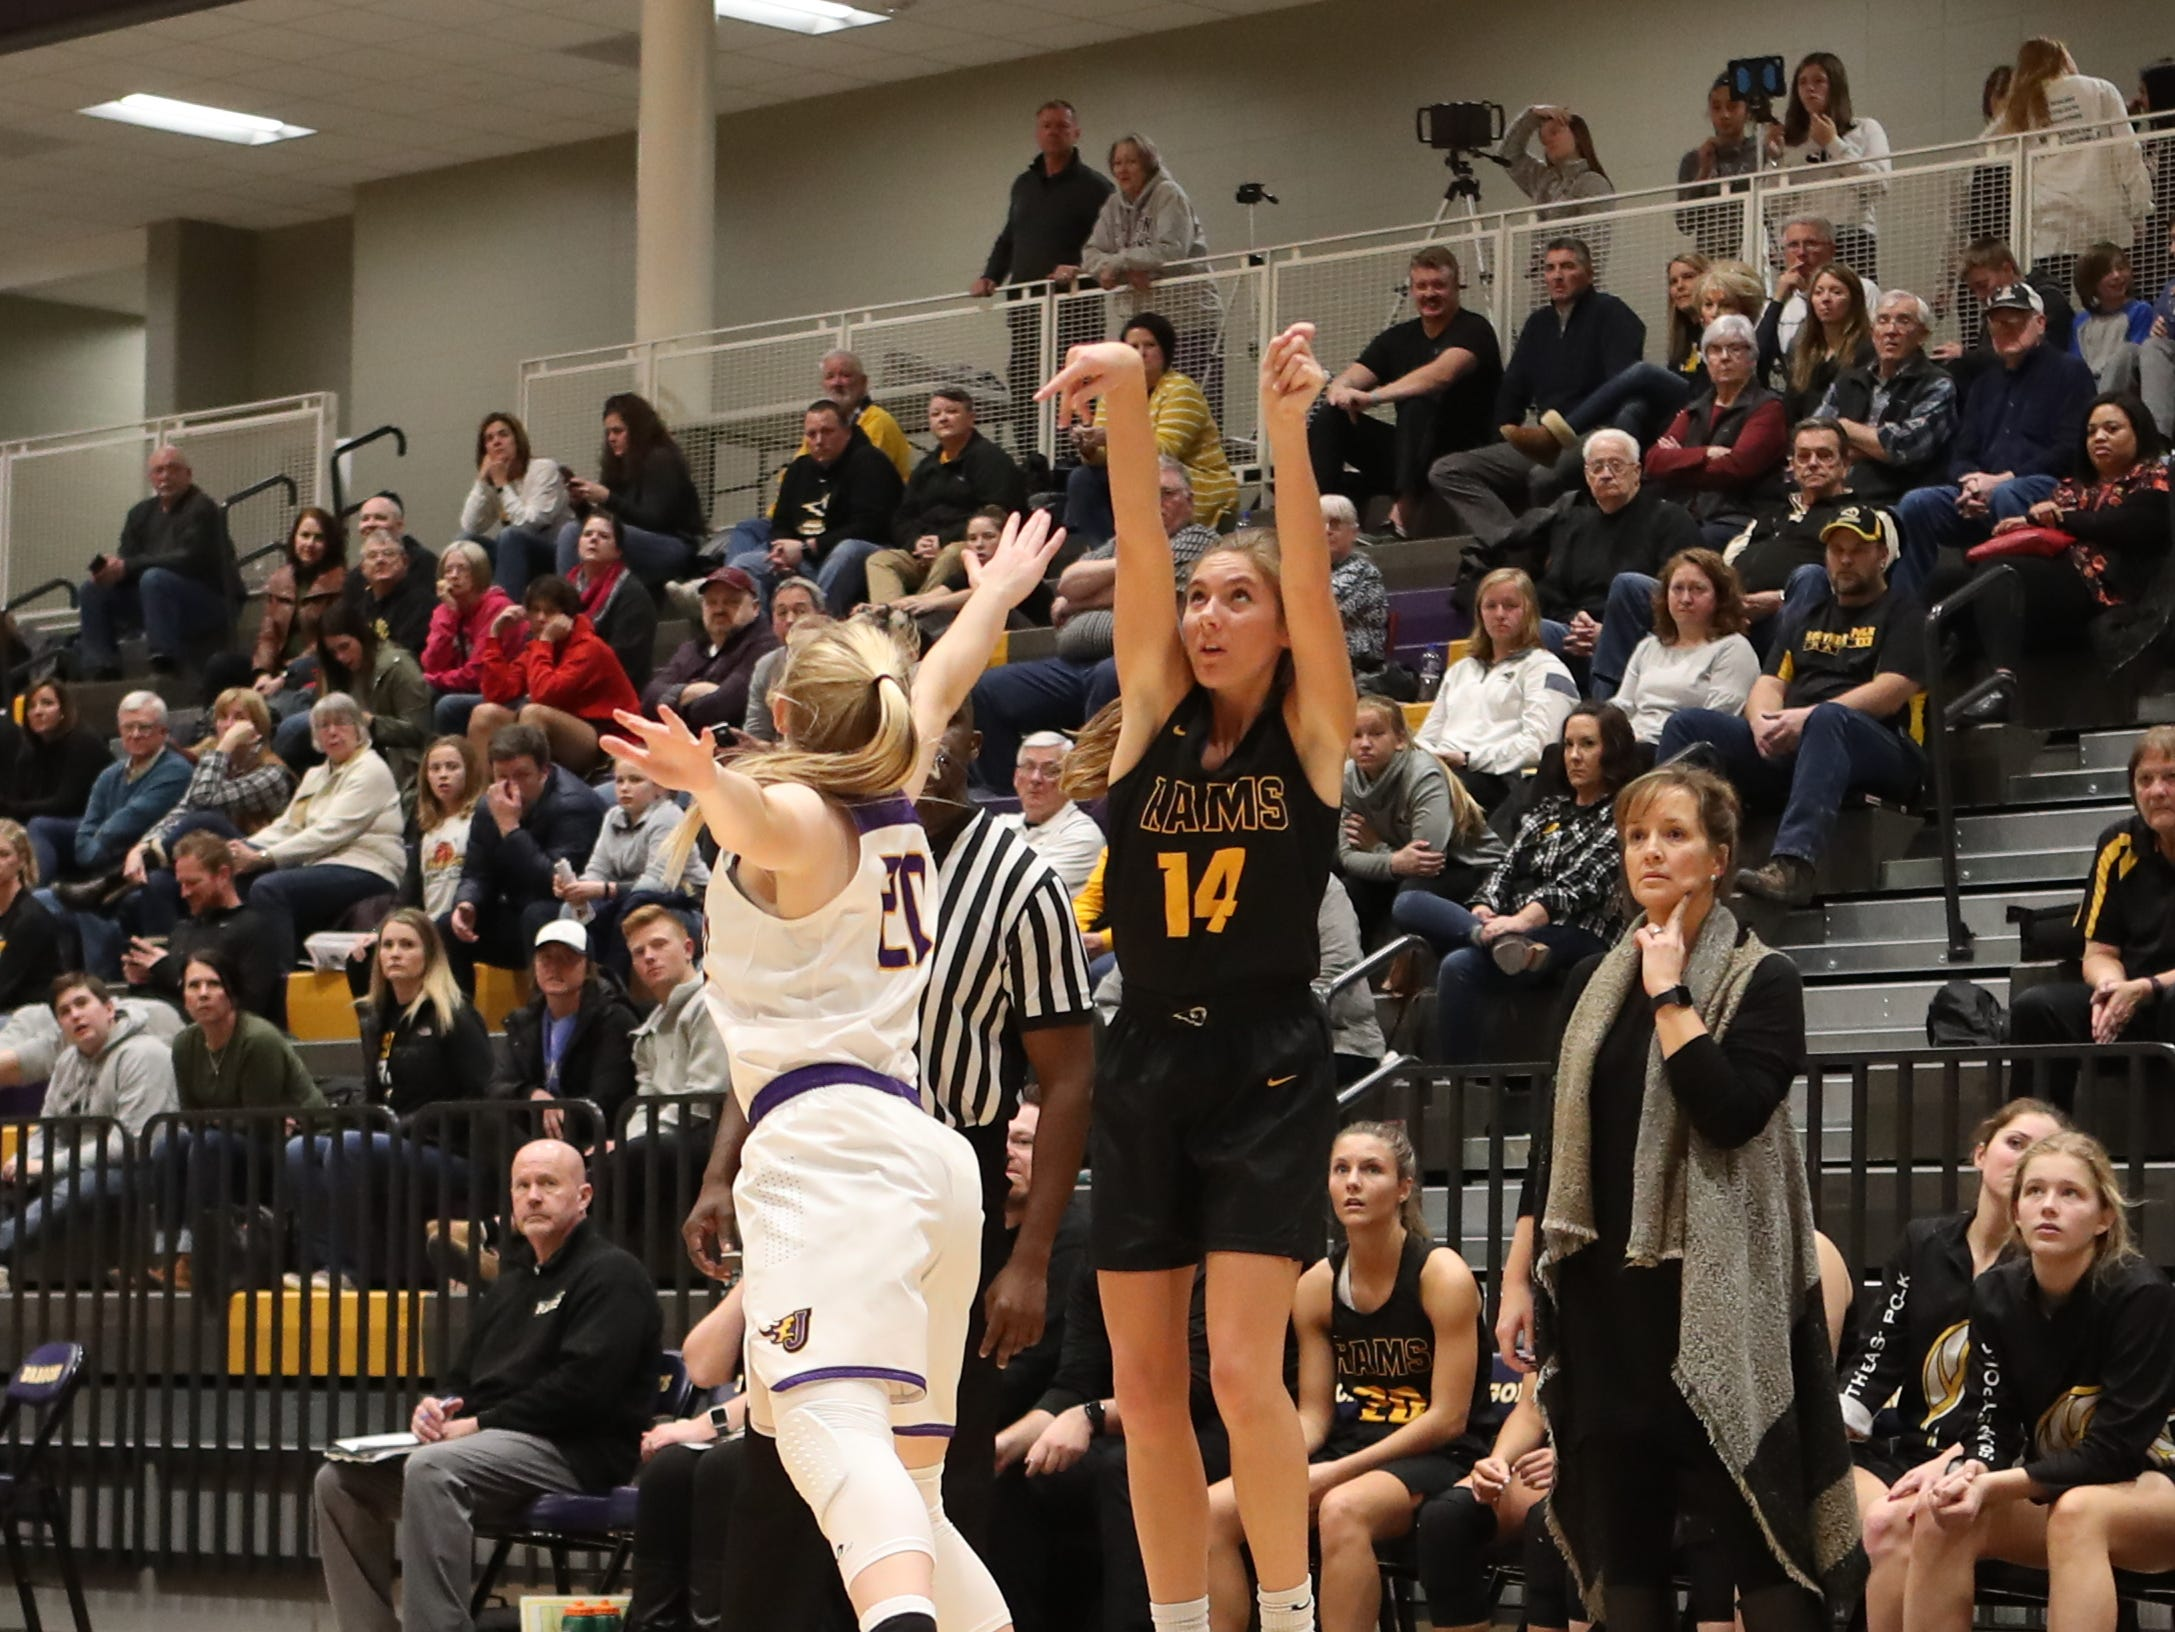 Southeast Polk's Jessica Stuart (14) shoots a 3-pointer Feb. 5 in a game against No. 1 Johnston at Johnston High School. The Dragons won the game 89-67.